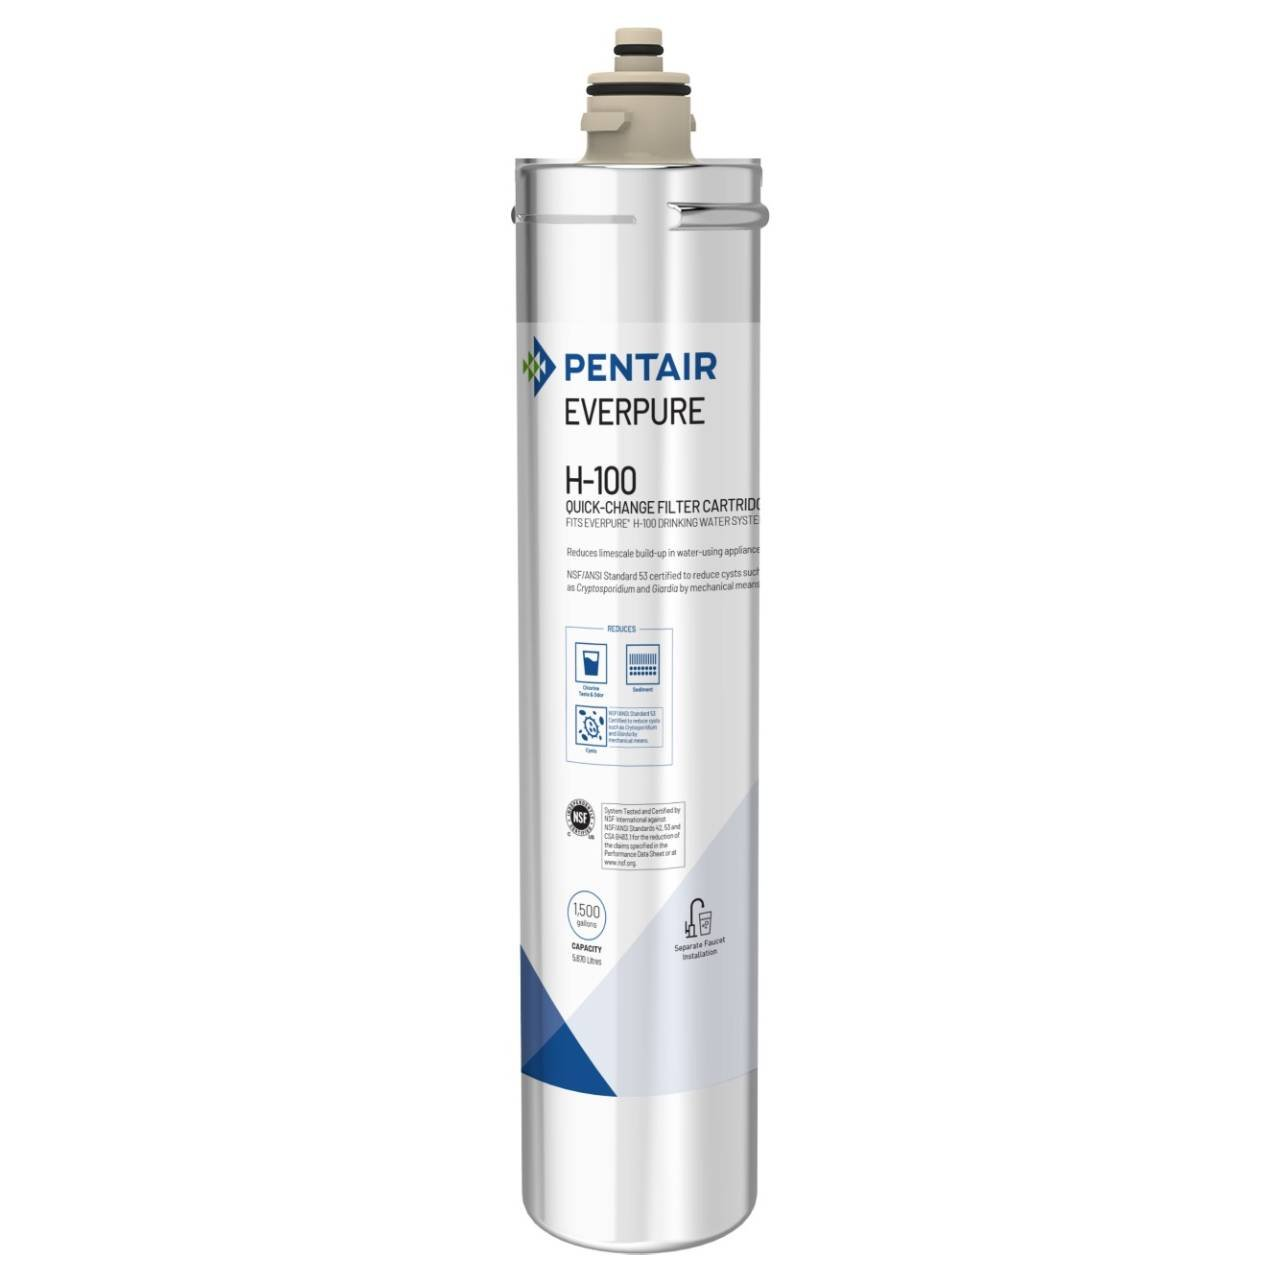 Everpure EV9611-16 H-100 Replacement Water Filter Cartridge